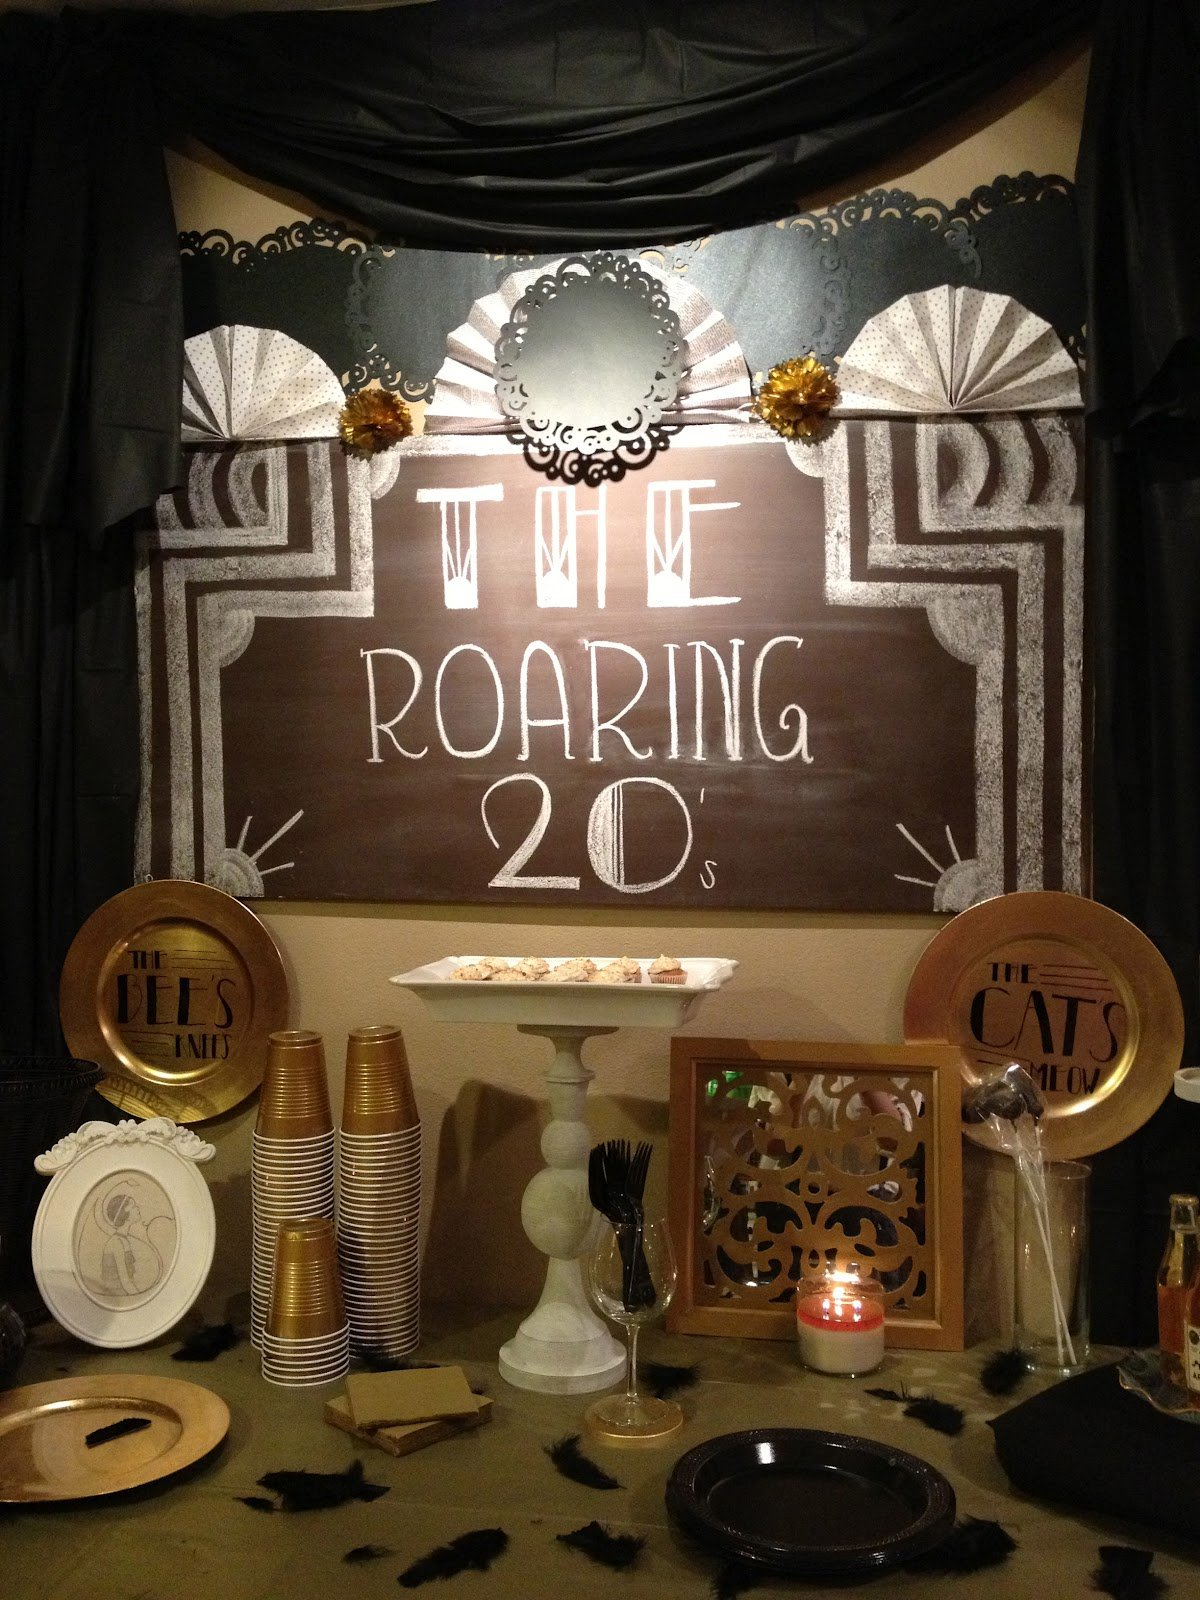 Roaring 20 s party quotes quotesgram for 1920 s party decoration ideas